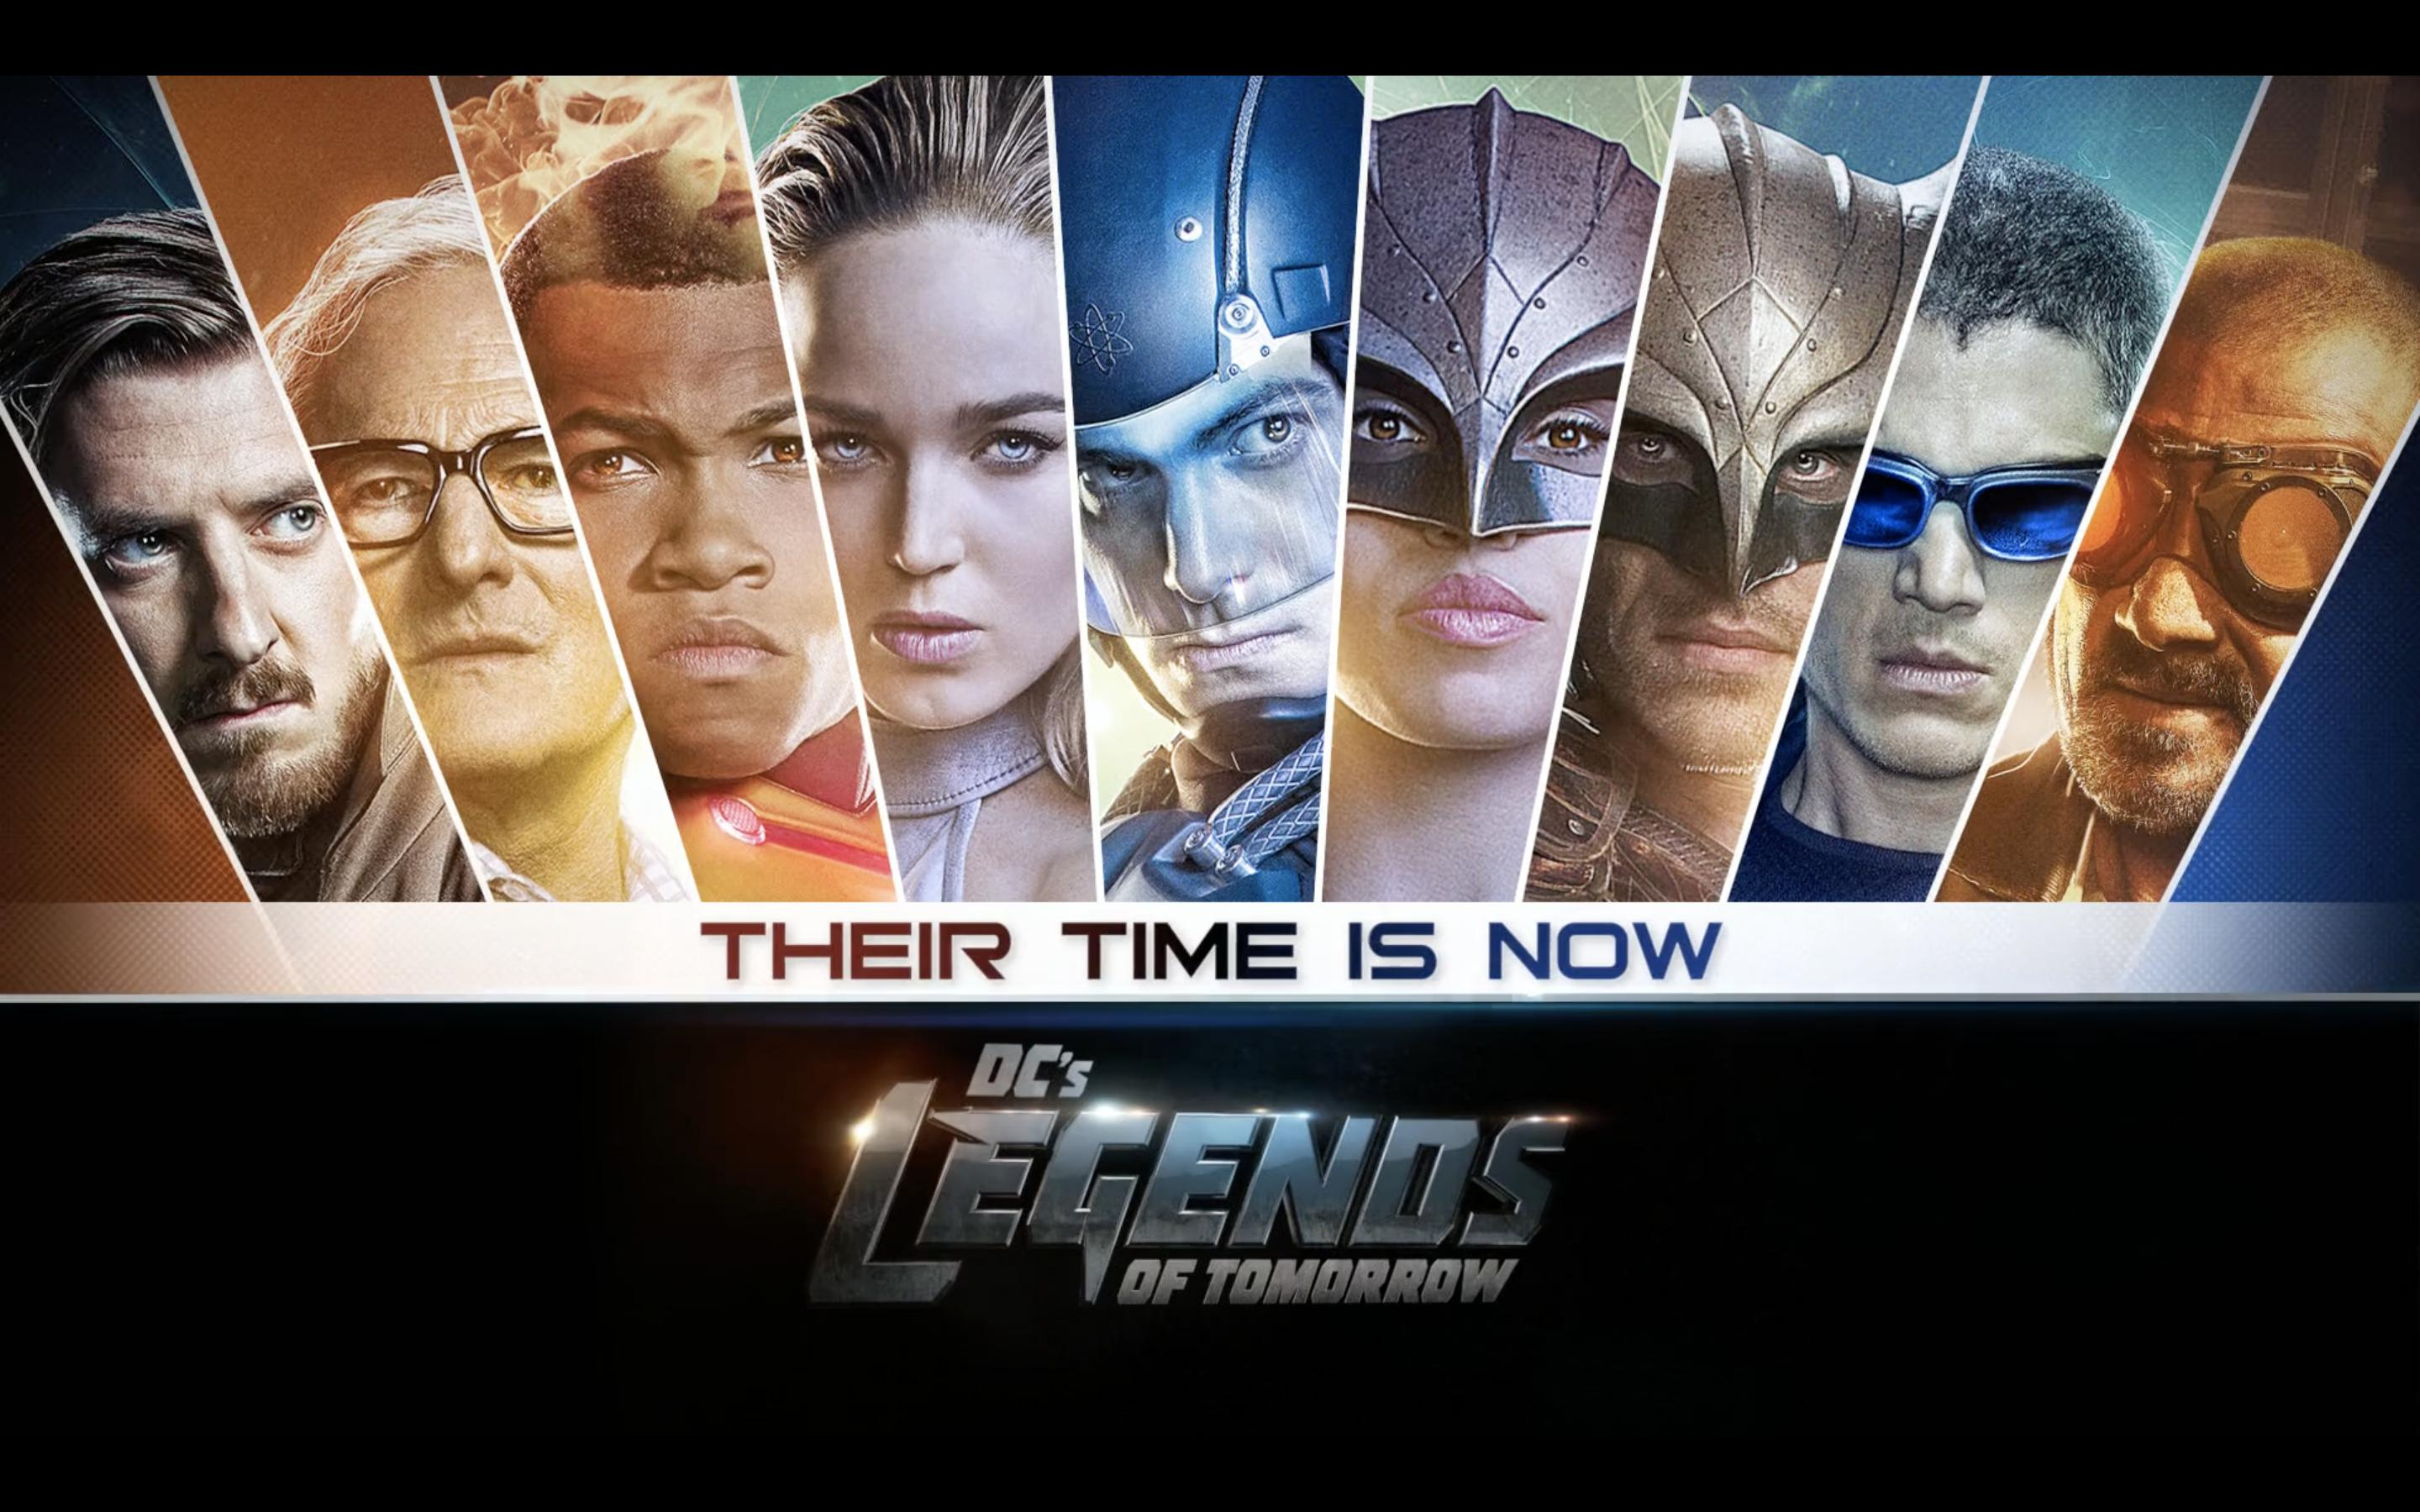 DC's Legends of Tomorrow: Their Time Is Now (2016)